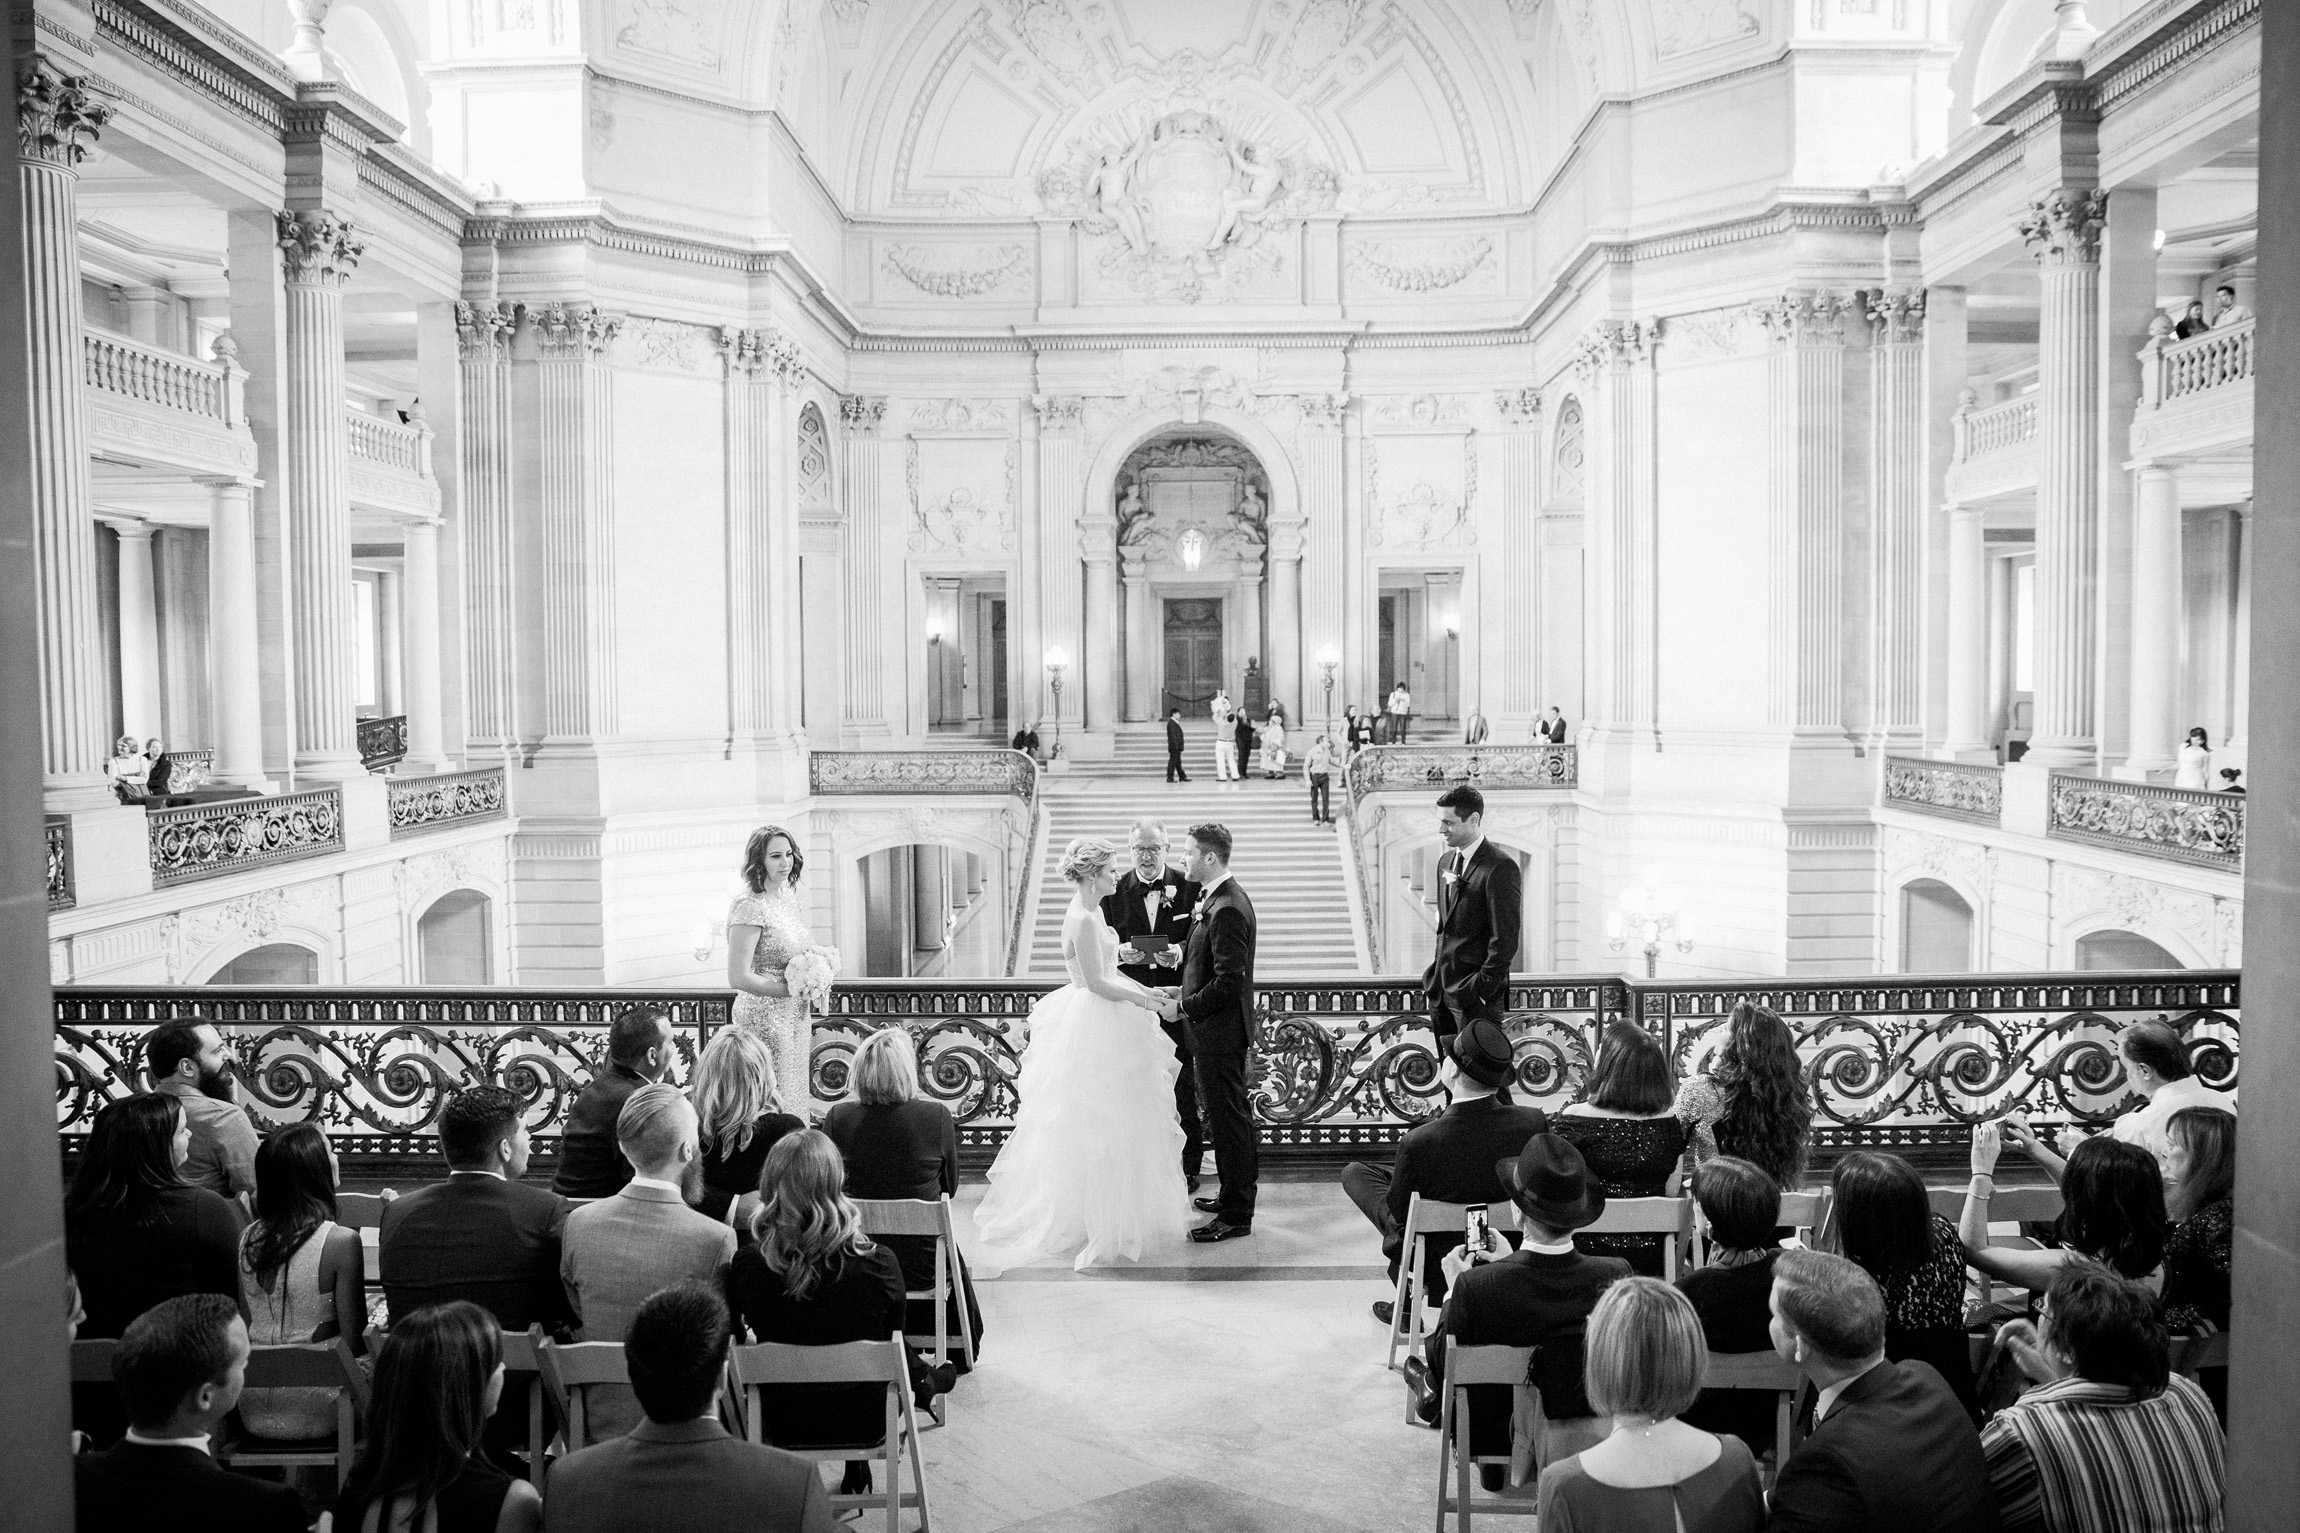 004_janaeshieldsphotography_sanfrancisco_cityhall_weddings.jpg